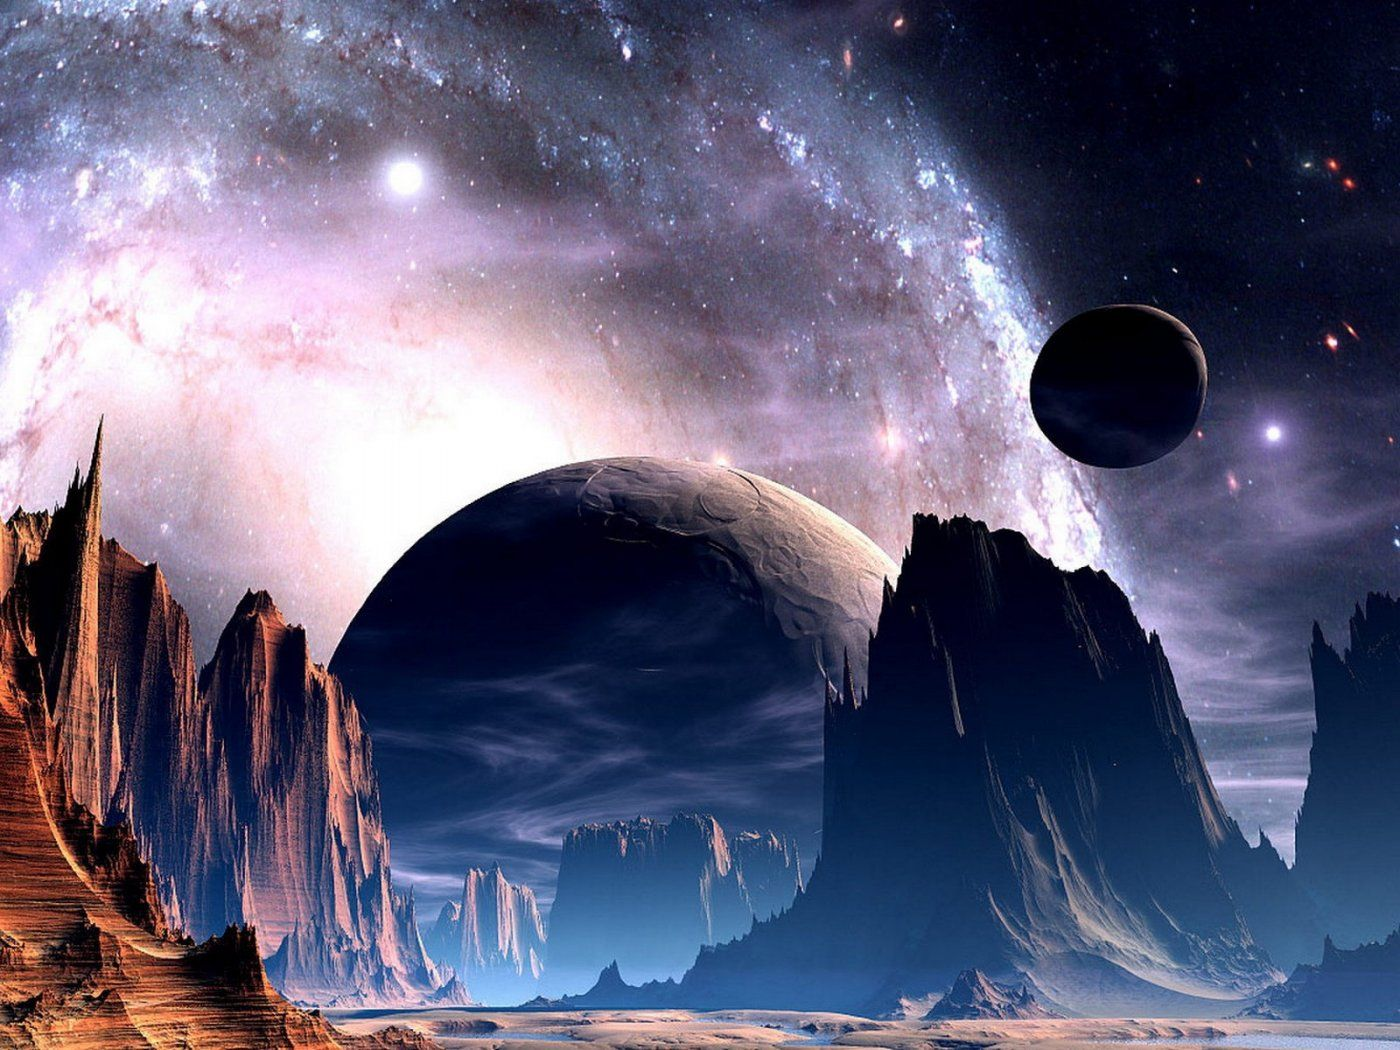 Image Detail For 3d Science Fiction Wallpapers Download Free More 3d Science Fiction Sci Fi Wallpaper Photography Backdrops Alien Planet